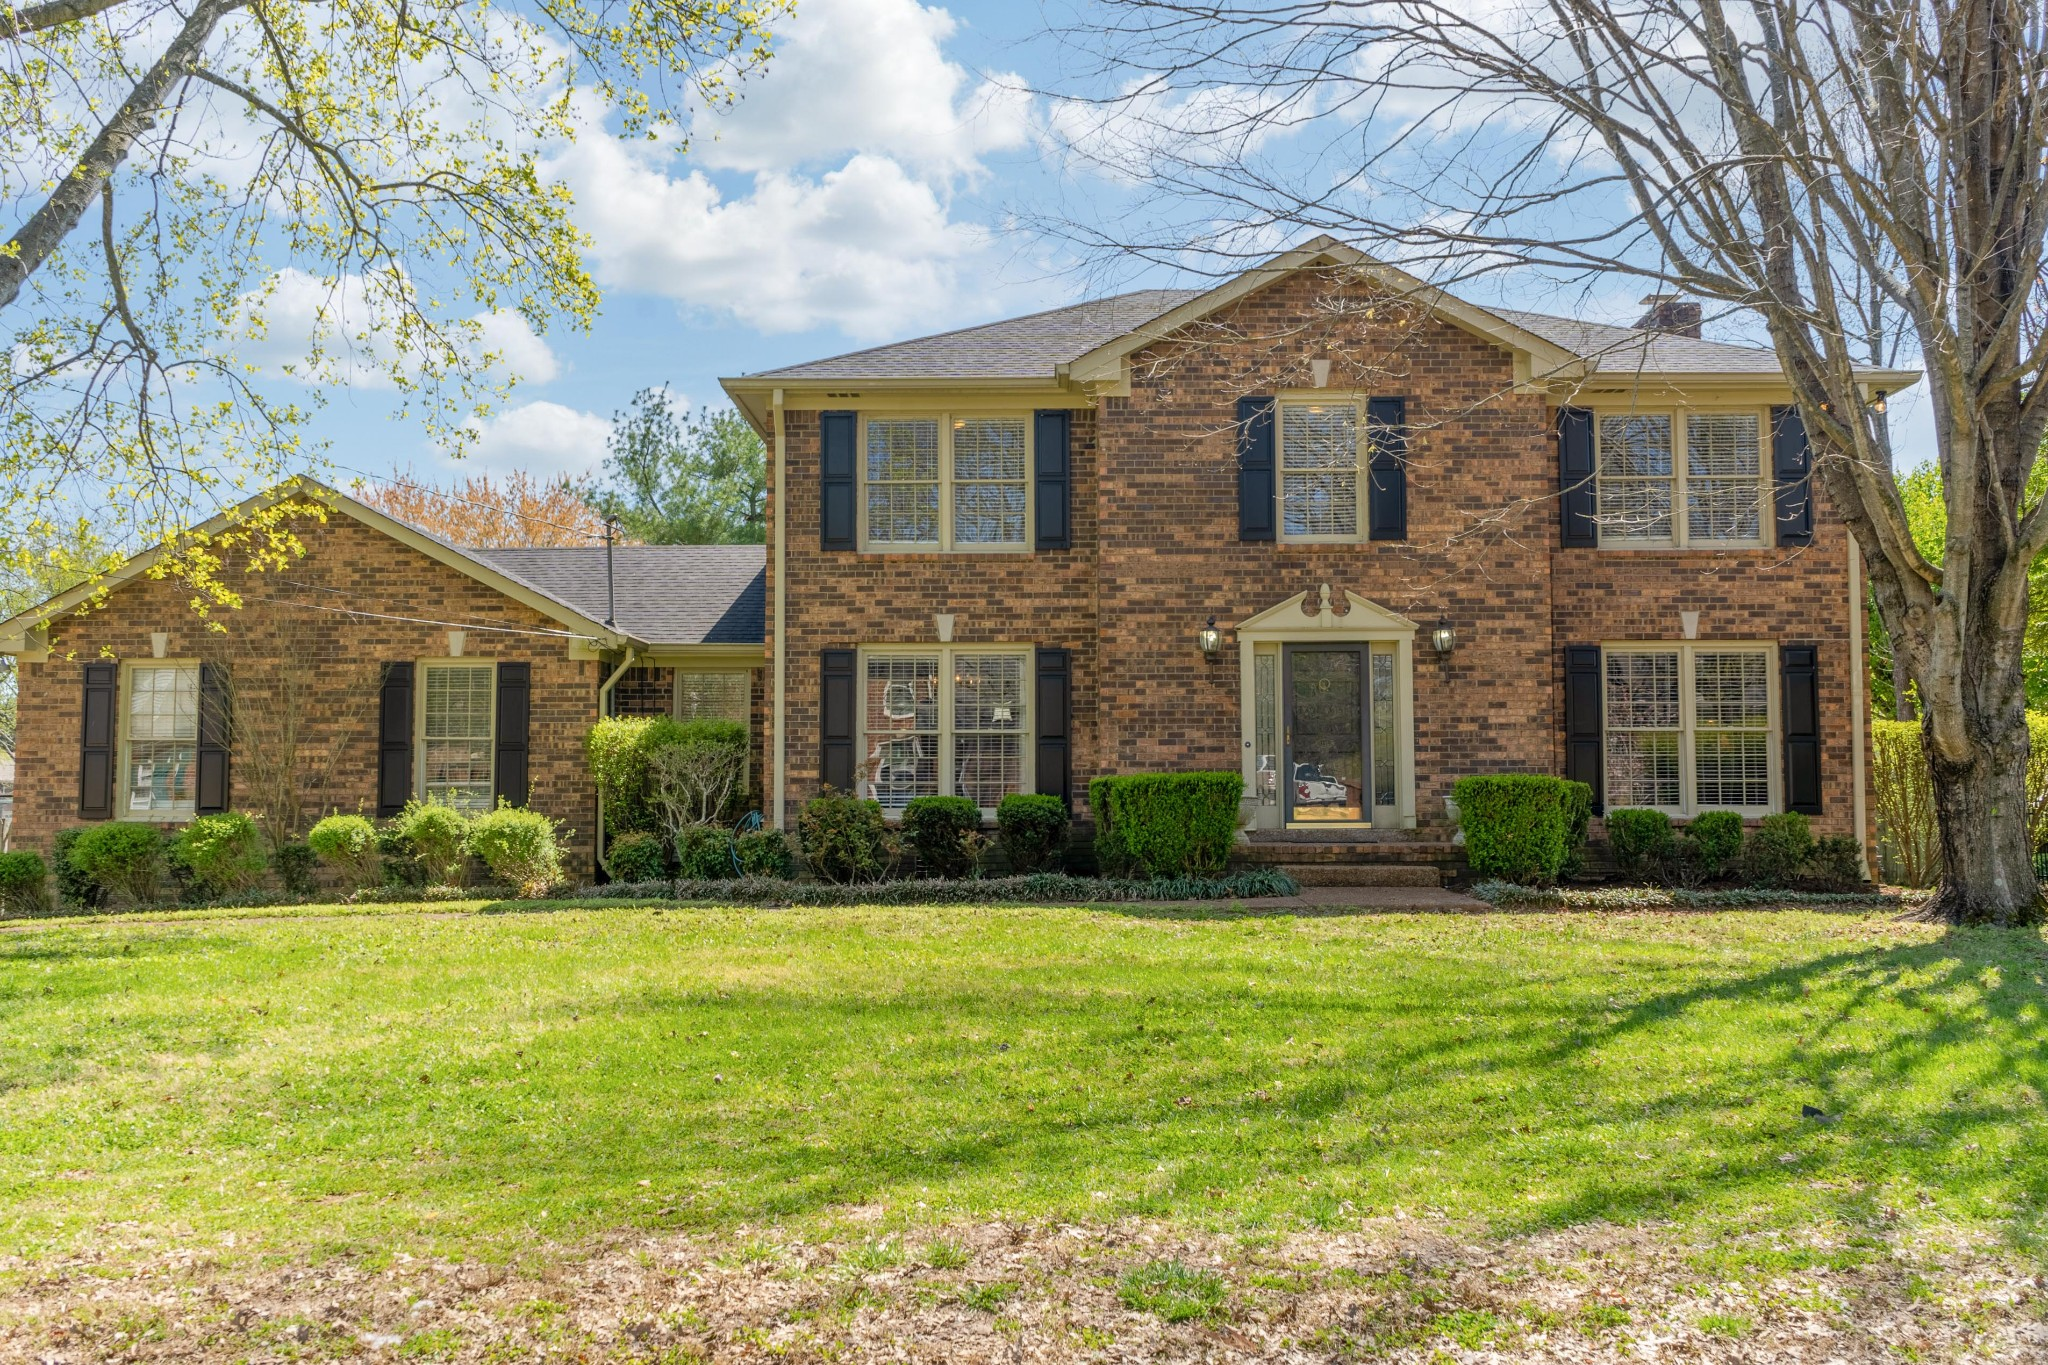 Great All Brick Home in Sought after Neighborhood on Indian Lake Peninsula. Home Offers a Study/Office, Formal Dining Room, Open Kitchen with Eating Area, Brick Fireplace, and a Large Bonus Room! Wonderful Screened in Deck that leads out to a Spacious Patio and a Leveled Privacy Fenced Backyard! Plenty of Parking Space in the Back for your Boat! Located Minutes from Stark Knob Boat Ramp!